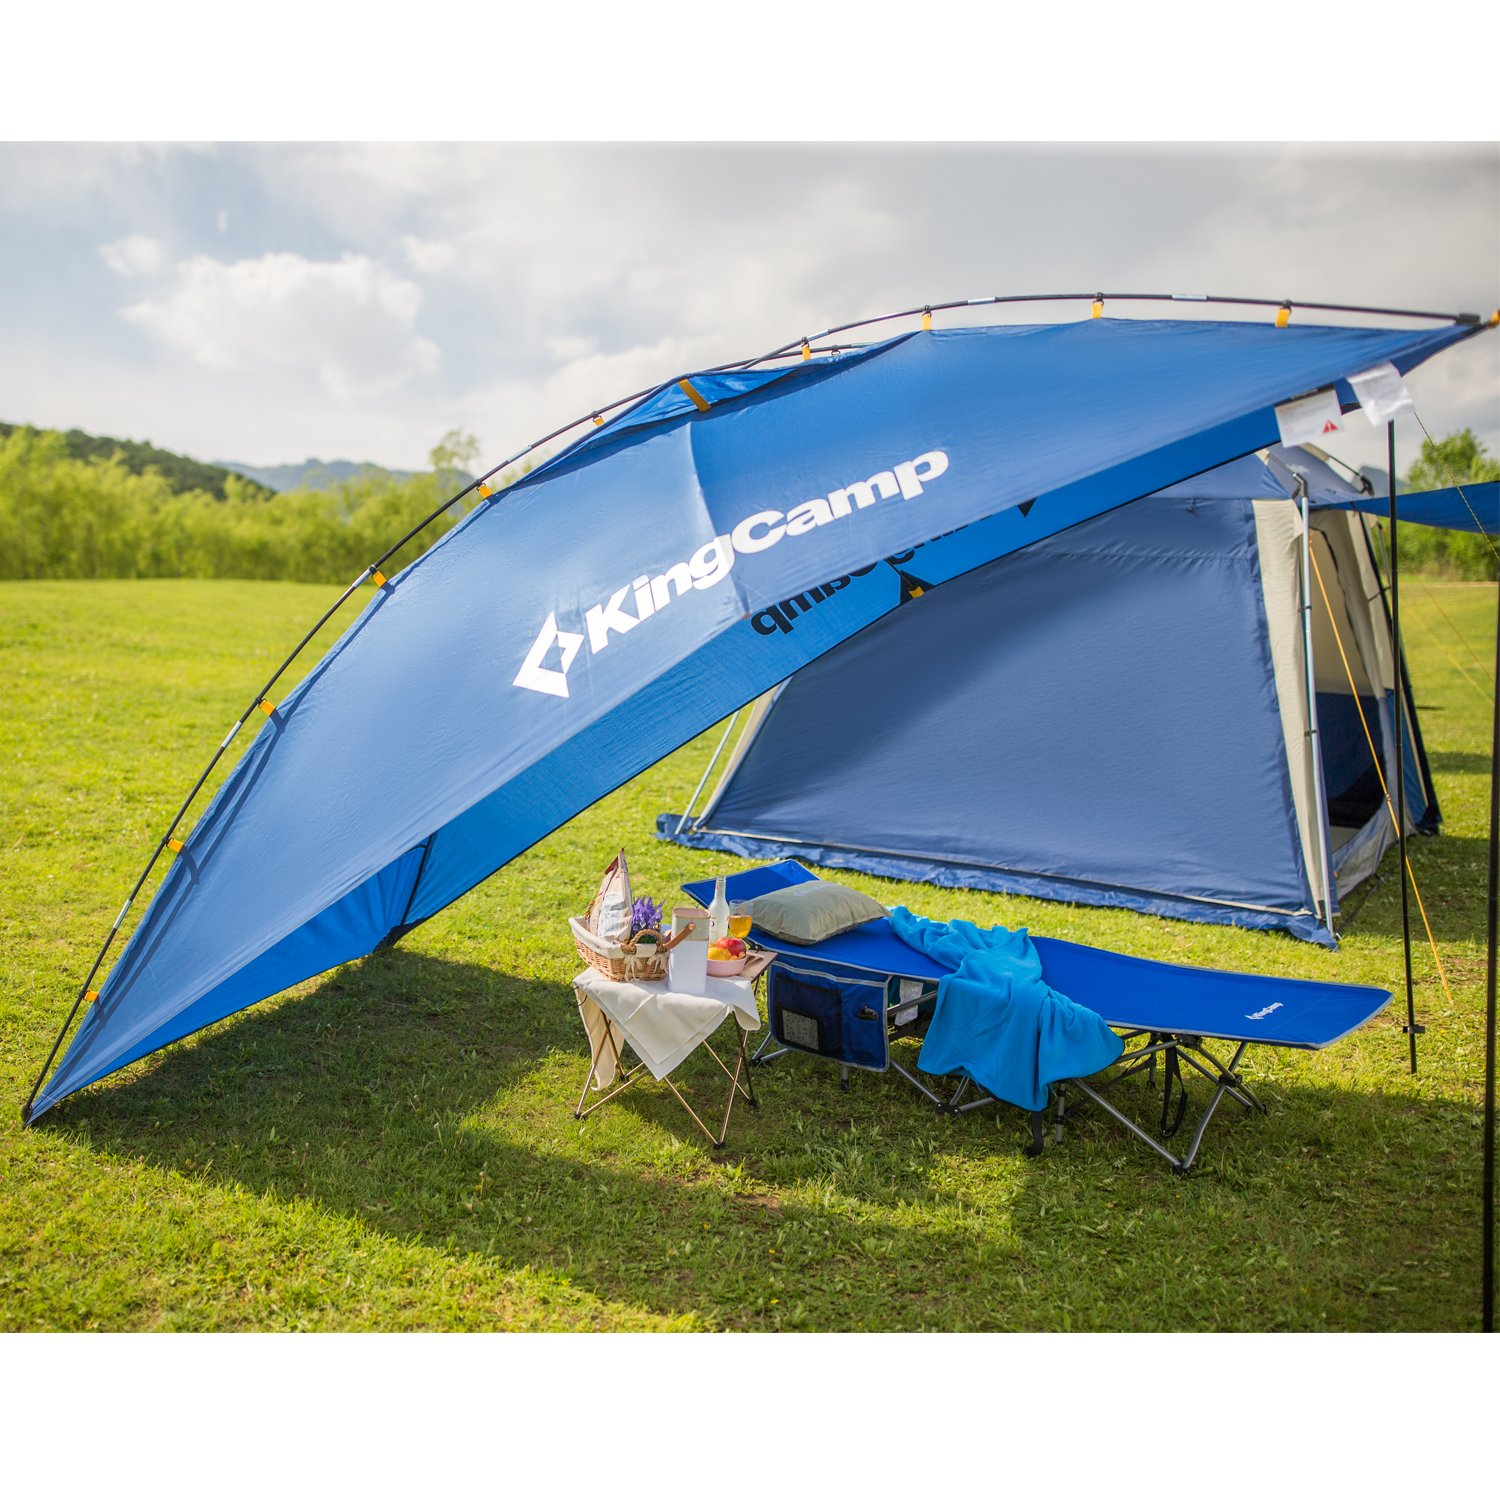 Amazon.com  KingC& Awning Sun Shelter Auto Canopy C&er Trailer Tent Roof Top for Beach SUV MPV Hatchback Minivan Sedan C&ing Outdoor ...  sc 1 st  Amazon.com & Amazon.com : KingCamp Awning Sun Shelter Auto Canopy Camper ...